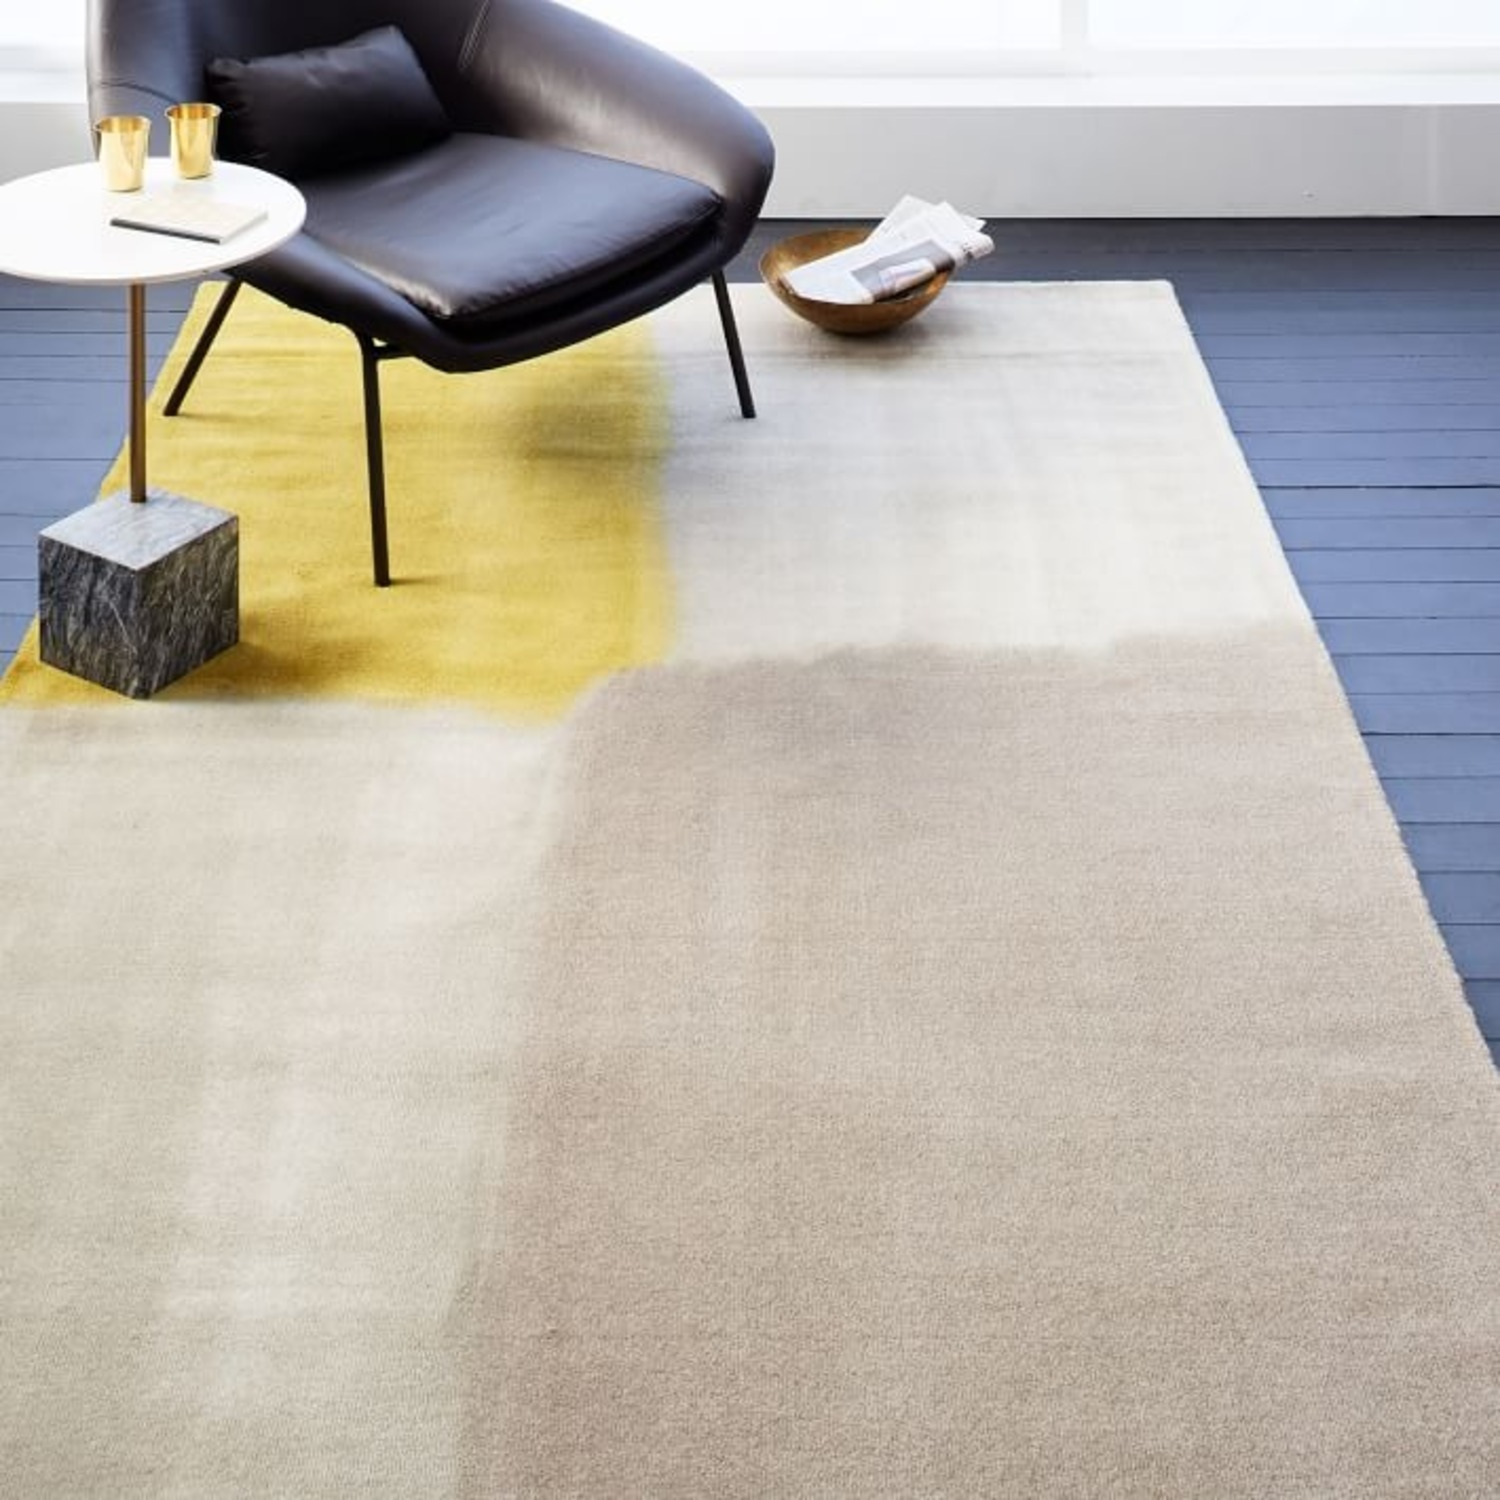 West Elm Area Rug 5' x 8' Frost Gray + Yellow - image-7